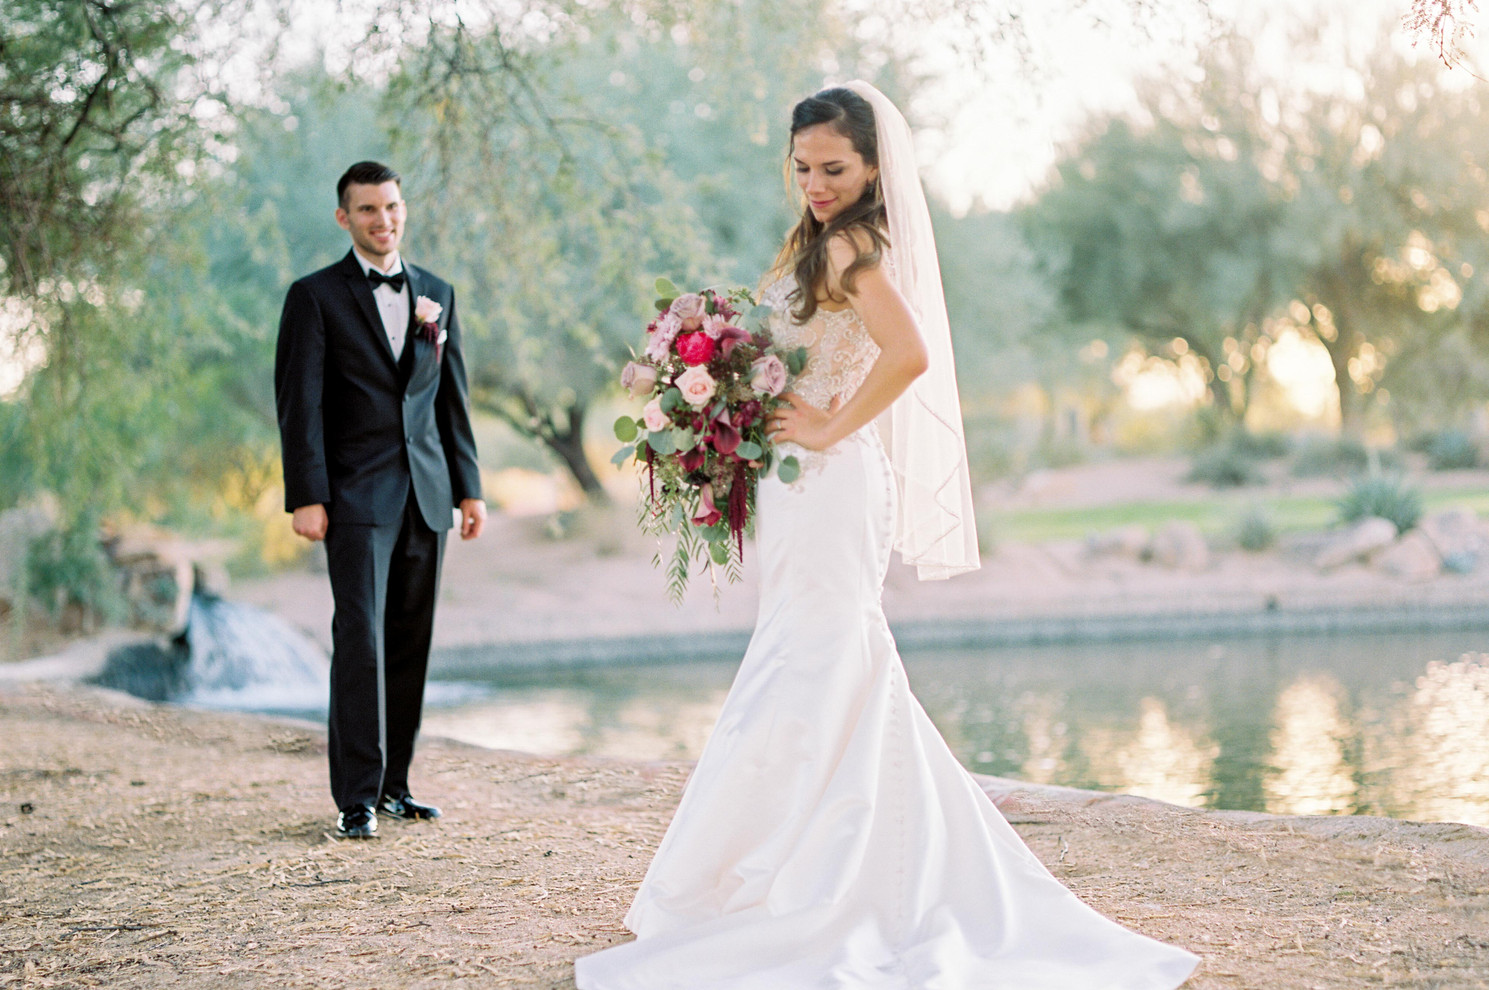 Fine art film weddings, Arizona wedding photographer,Az Fine art weddings in AZ